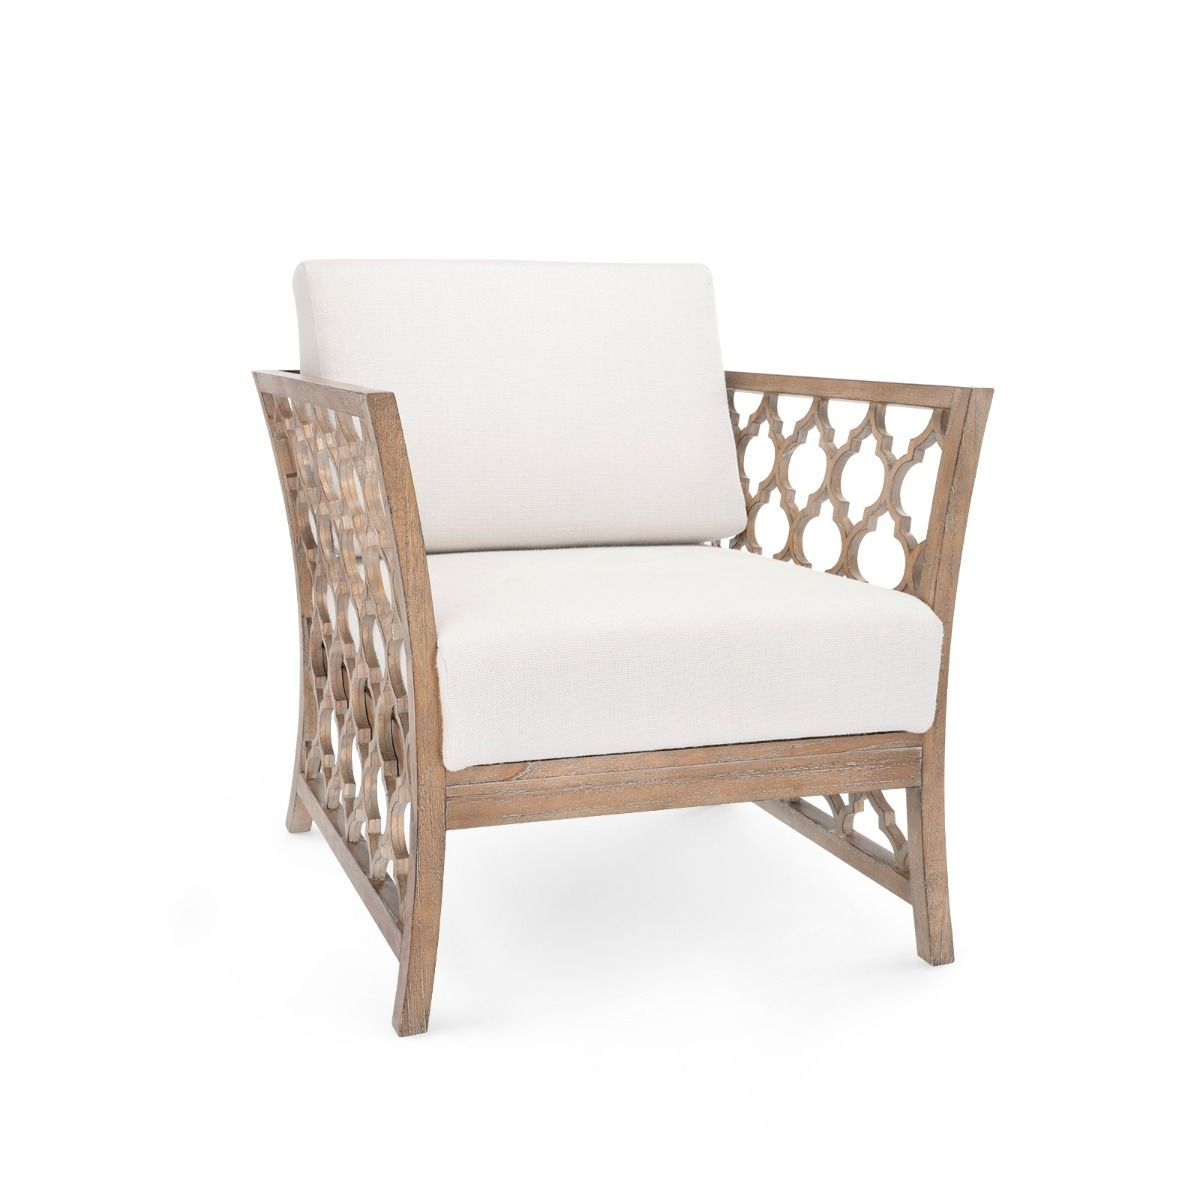 Bungalow 5 - PARKAN CLUB CHAIR, DRIFTWOOD